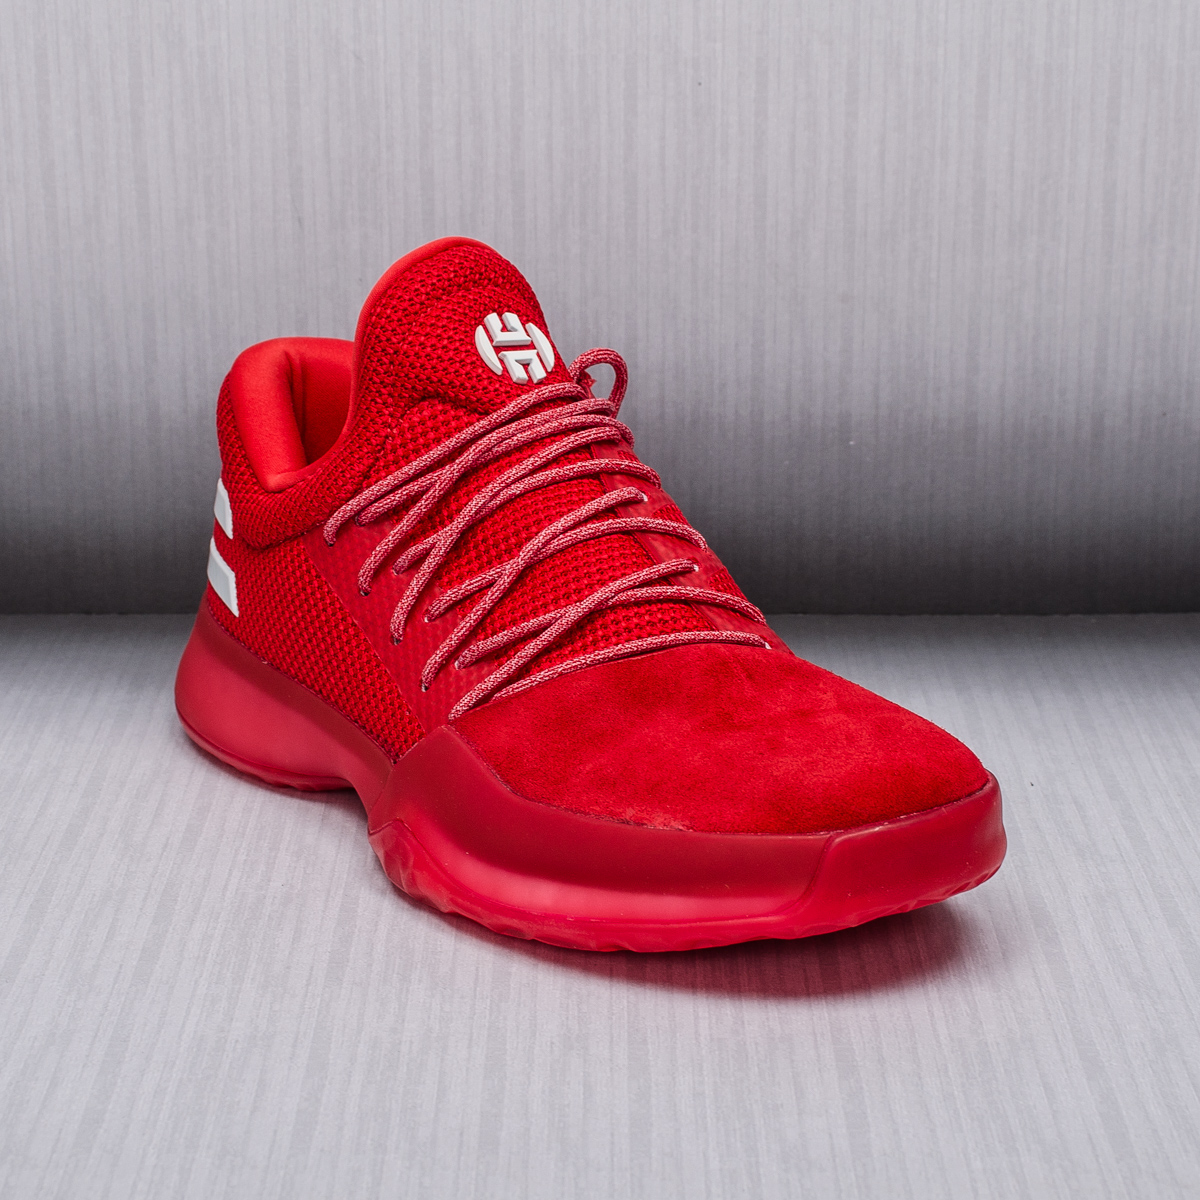 ... cheapest adidas harden vol. 1 basketball shoes a8a0a f2024 5e638314f